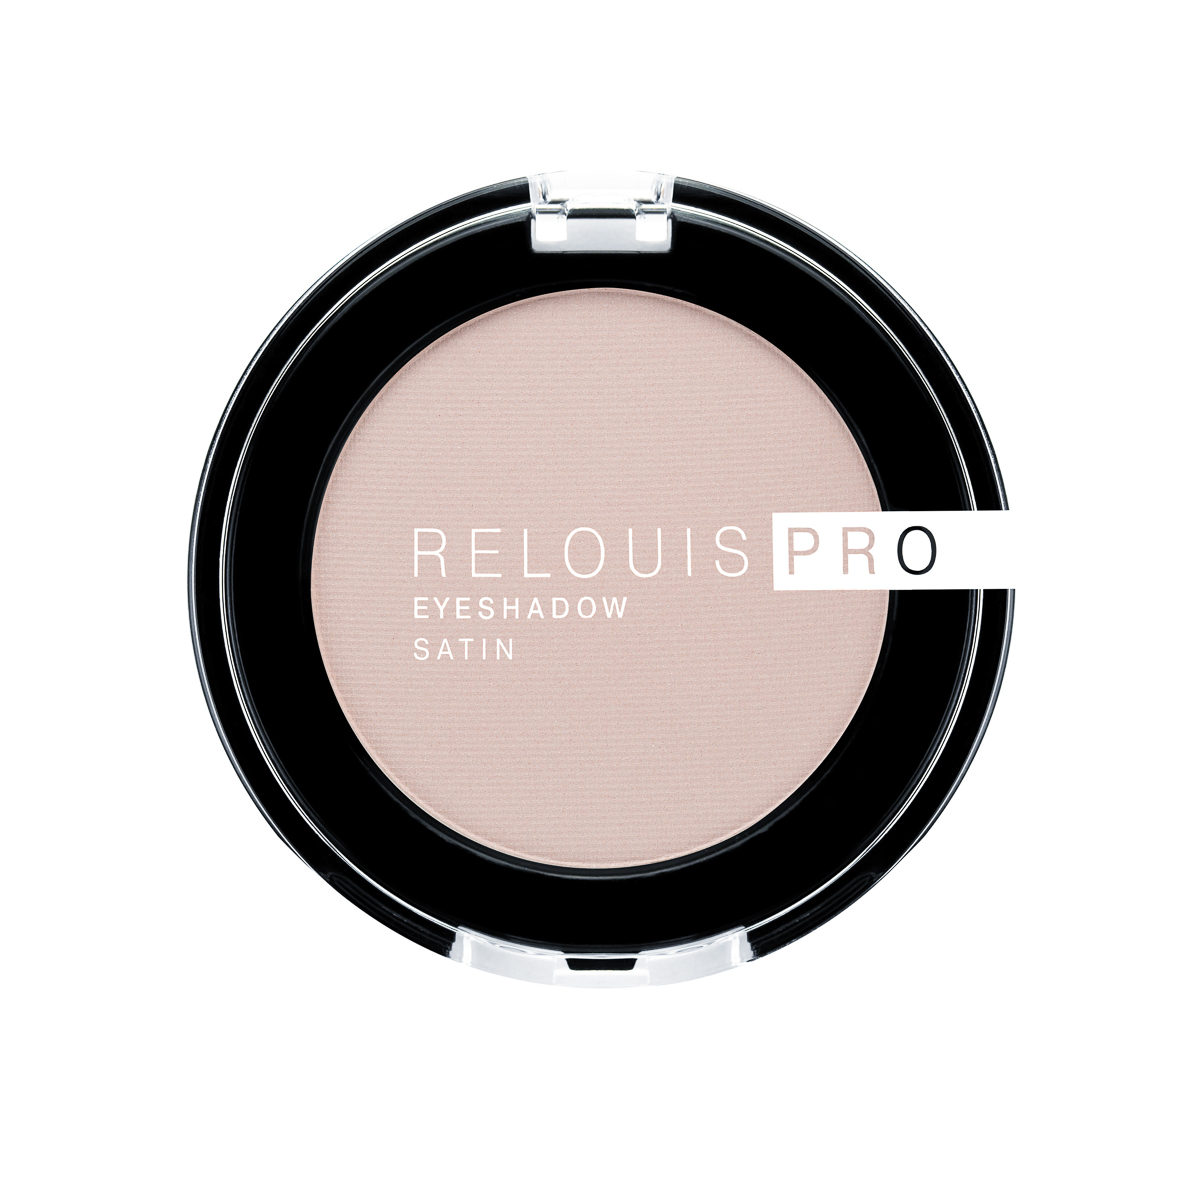 Relouis - PRO - Тени для век Eyeshadow SATIN